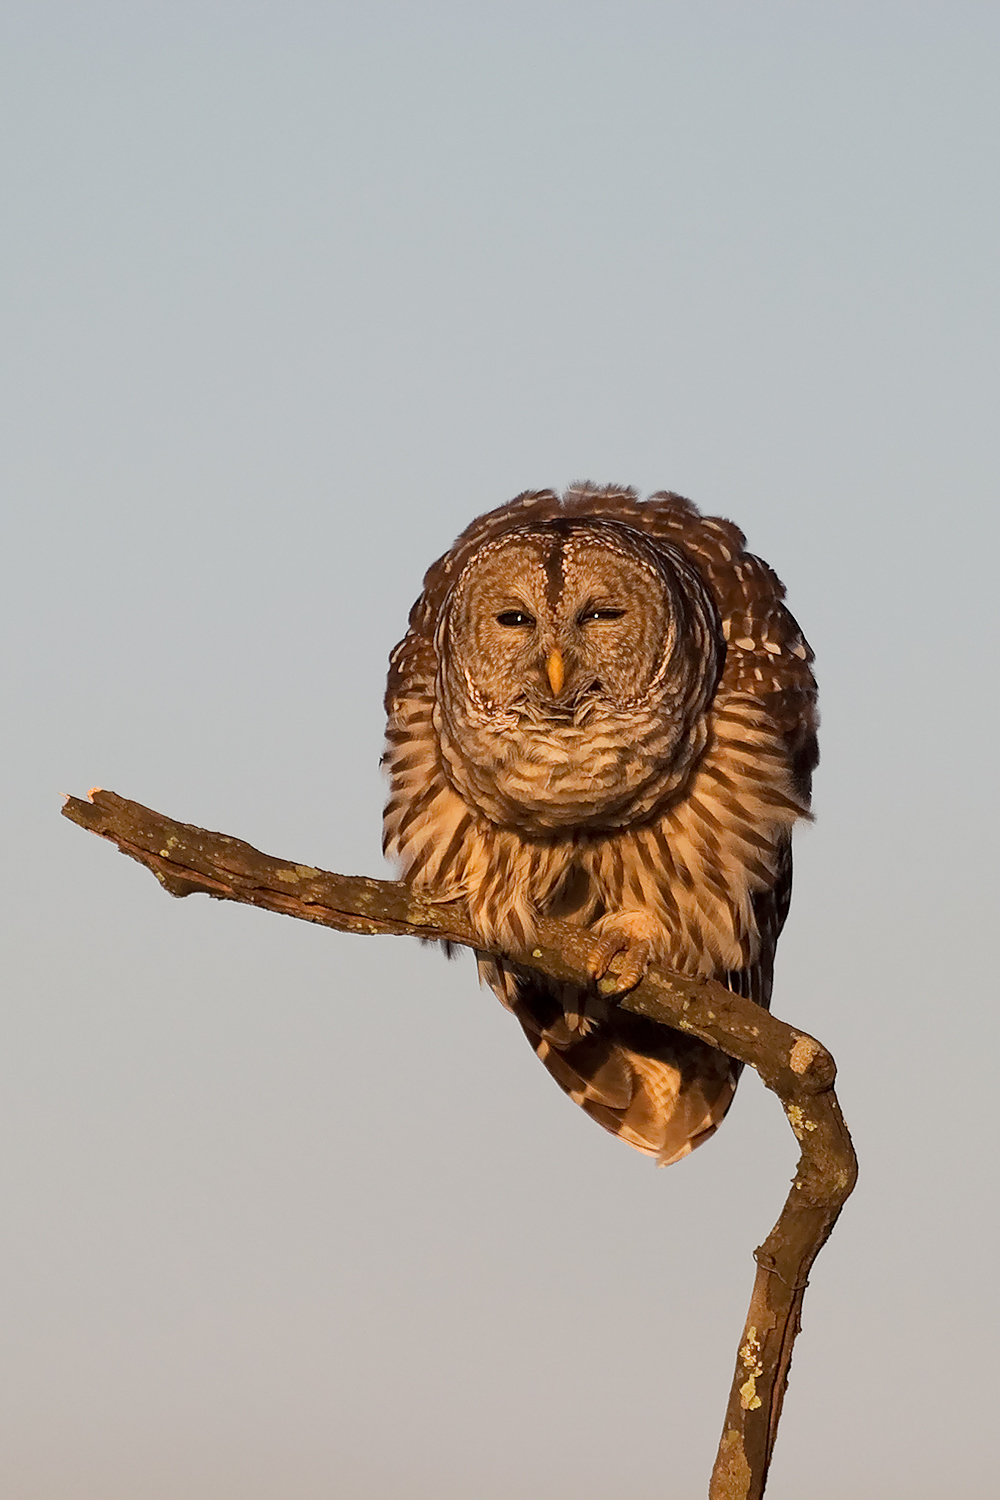 Barred Owl Poses